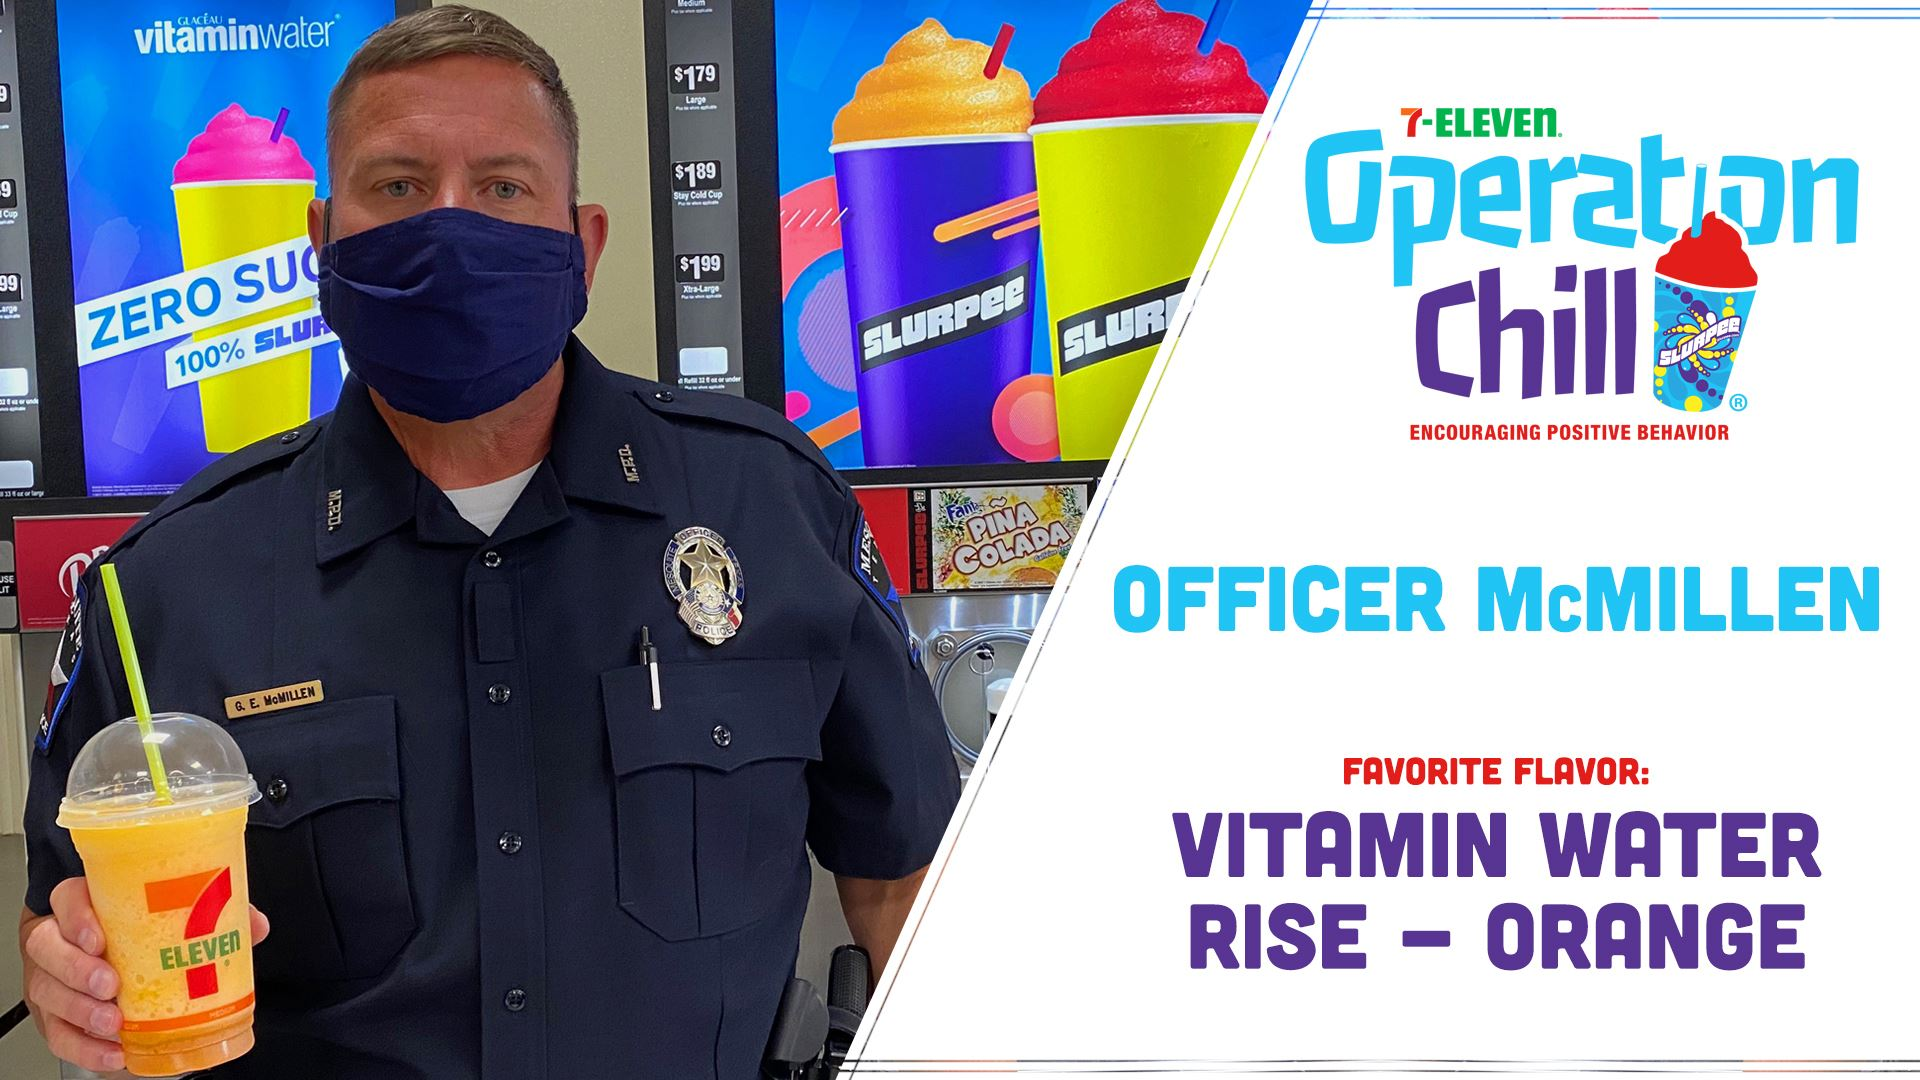 Mesquite Police Officer - Fav Flavor Vitamin Water Rise Orange - 7-Eleven Operation Big  Chill Campa